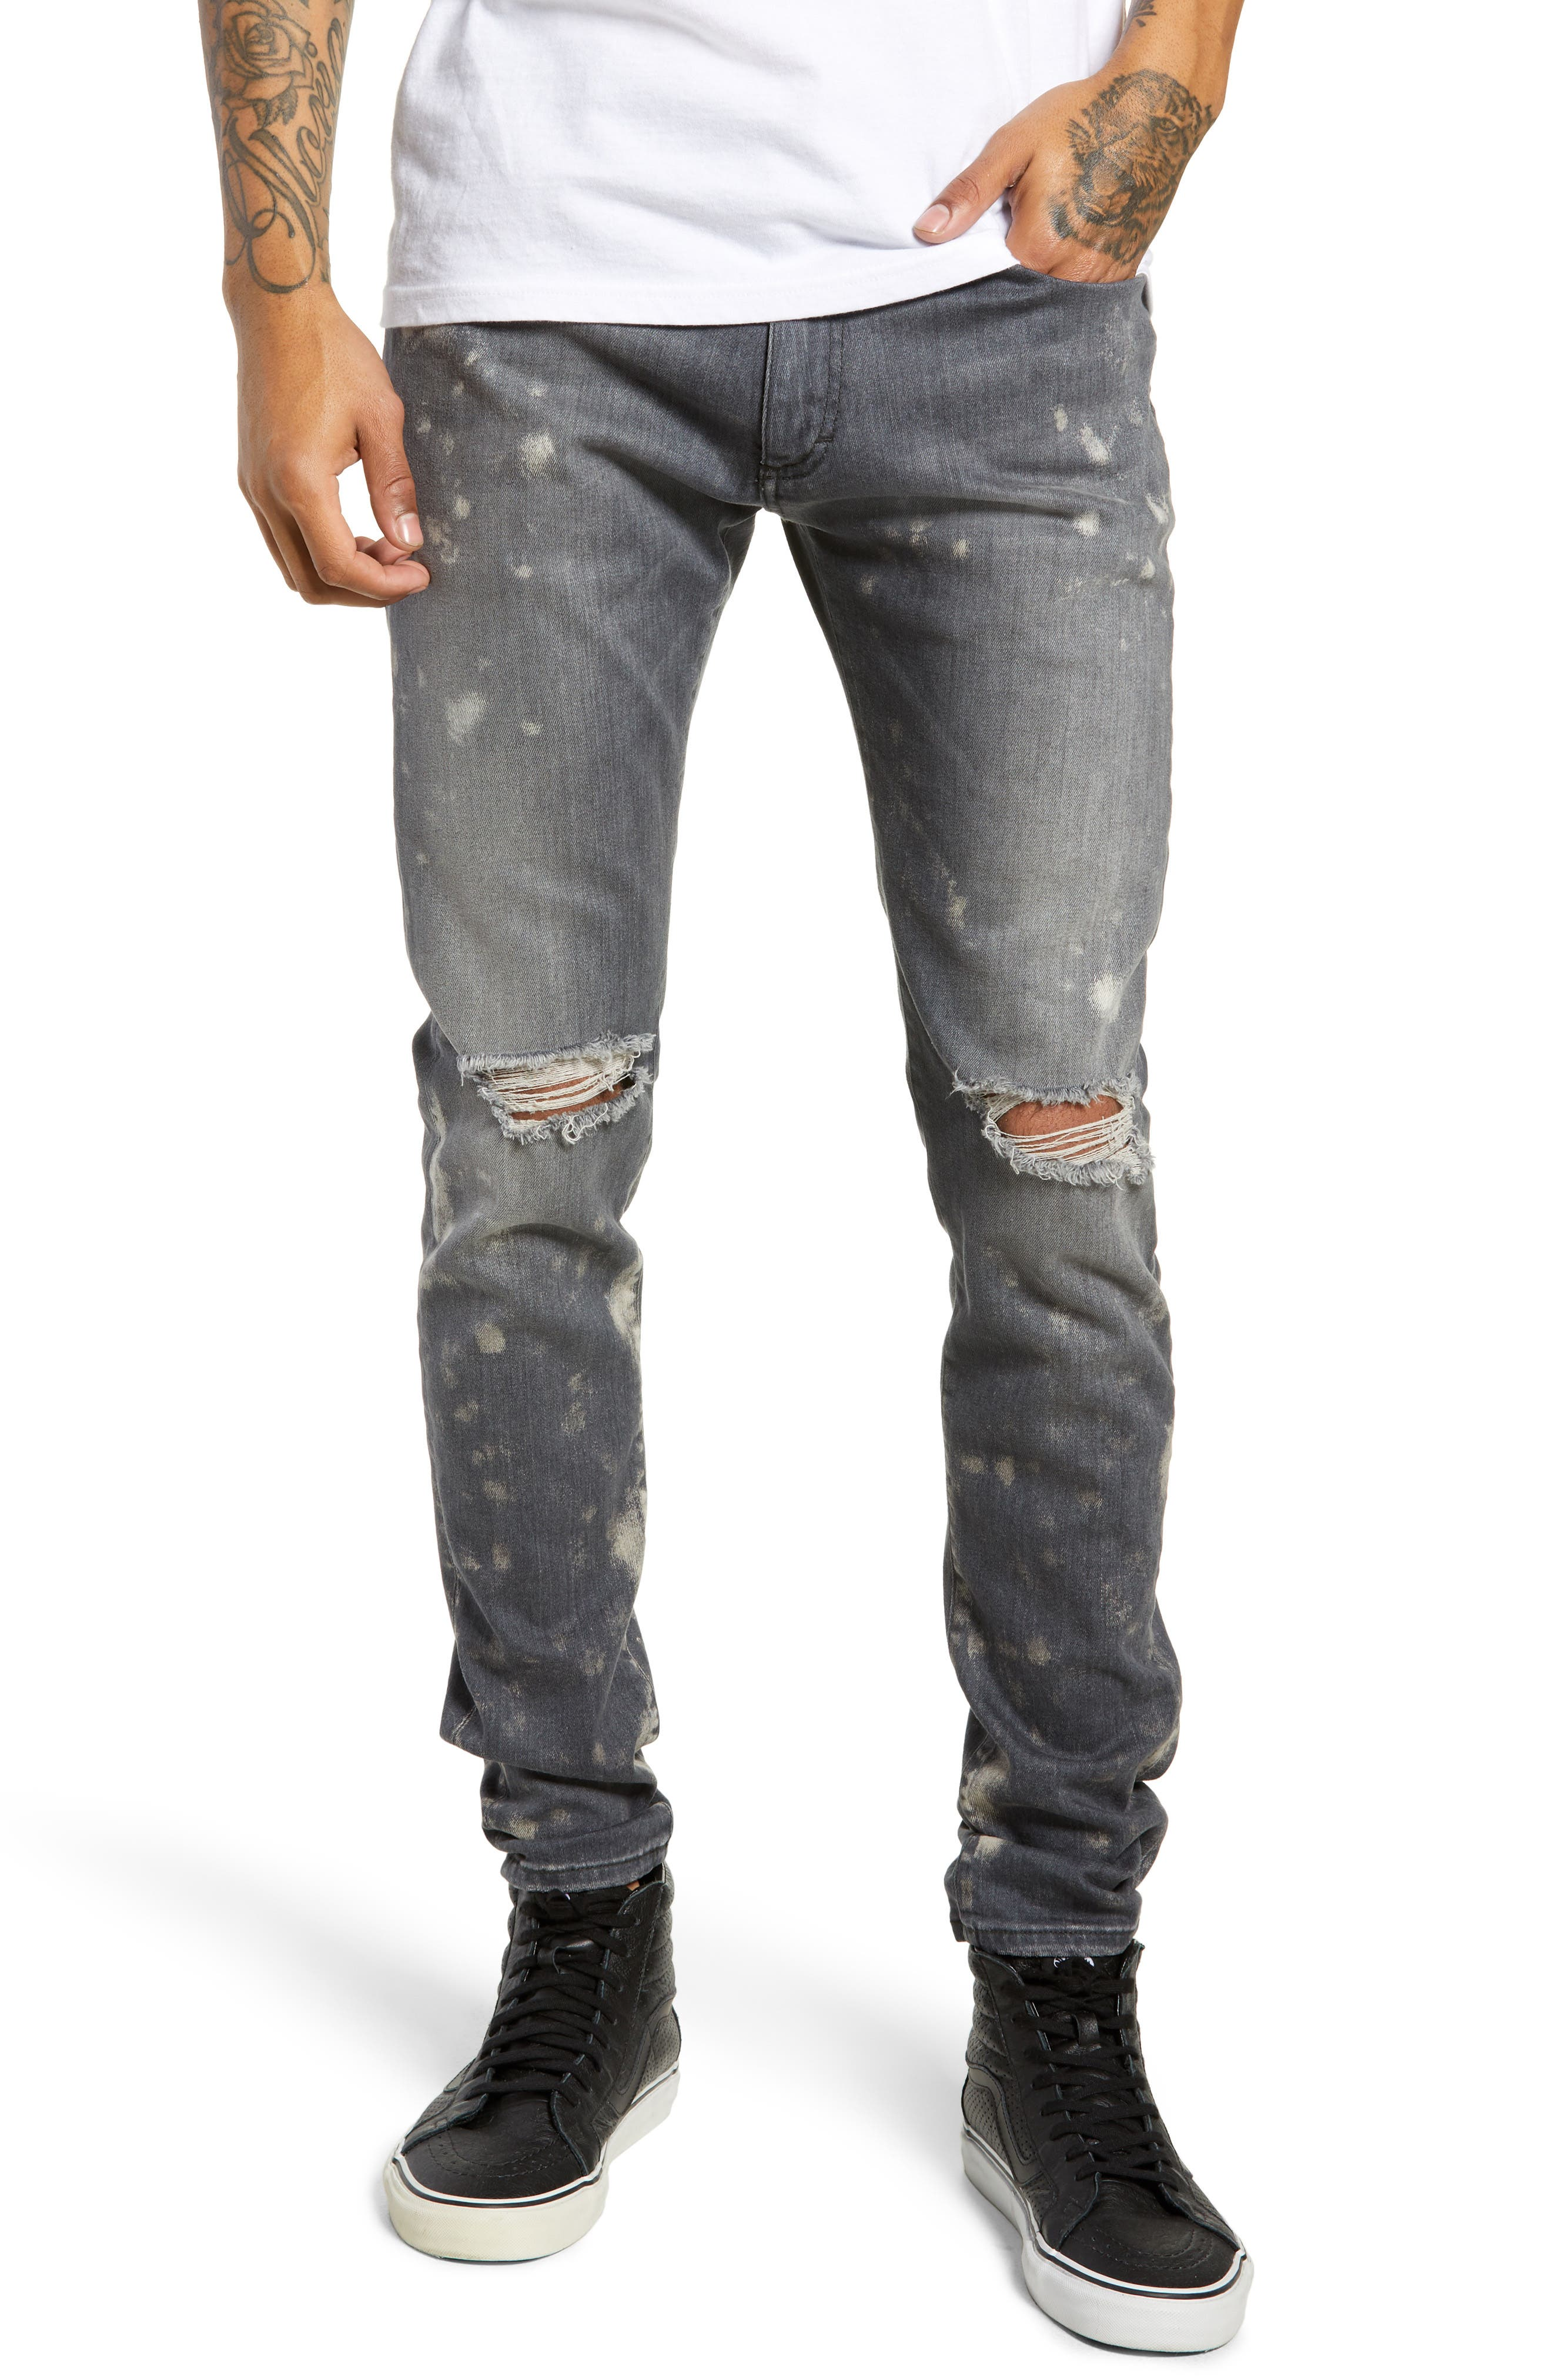 Destroyer Ripped Slim Fit Jeans,                             Main thumbnail 1, color,                             GREY STONE